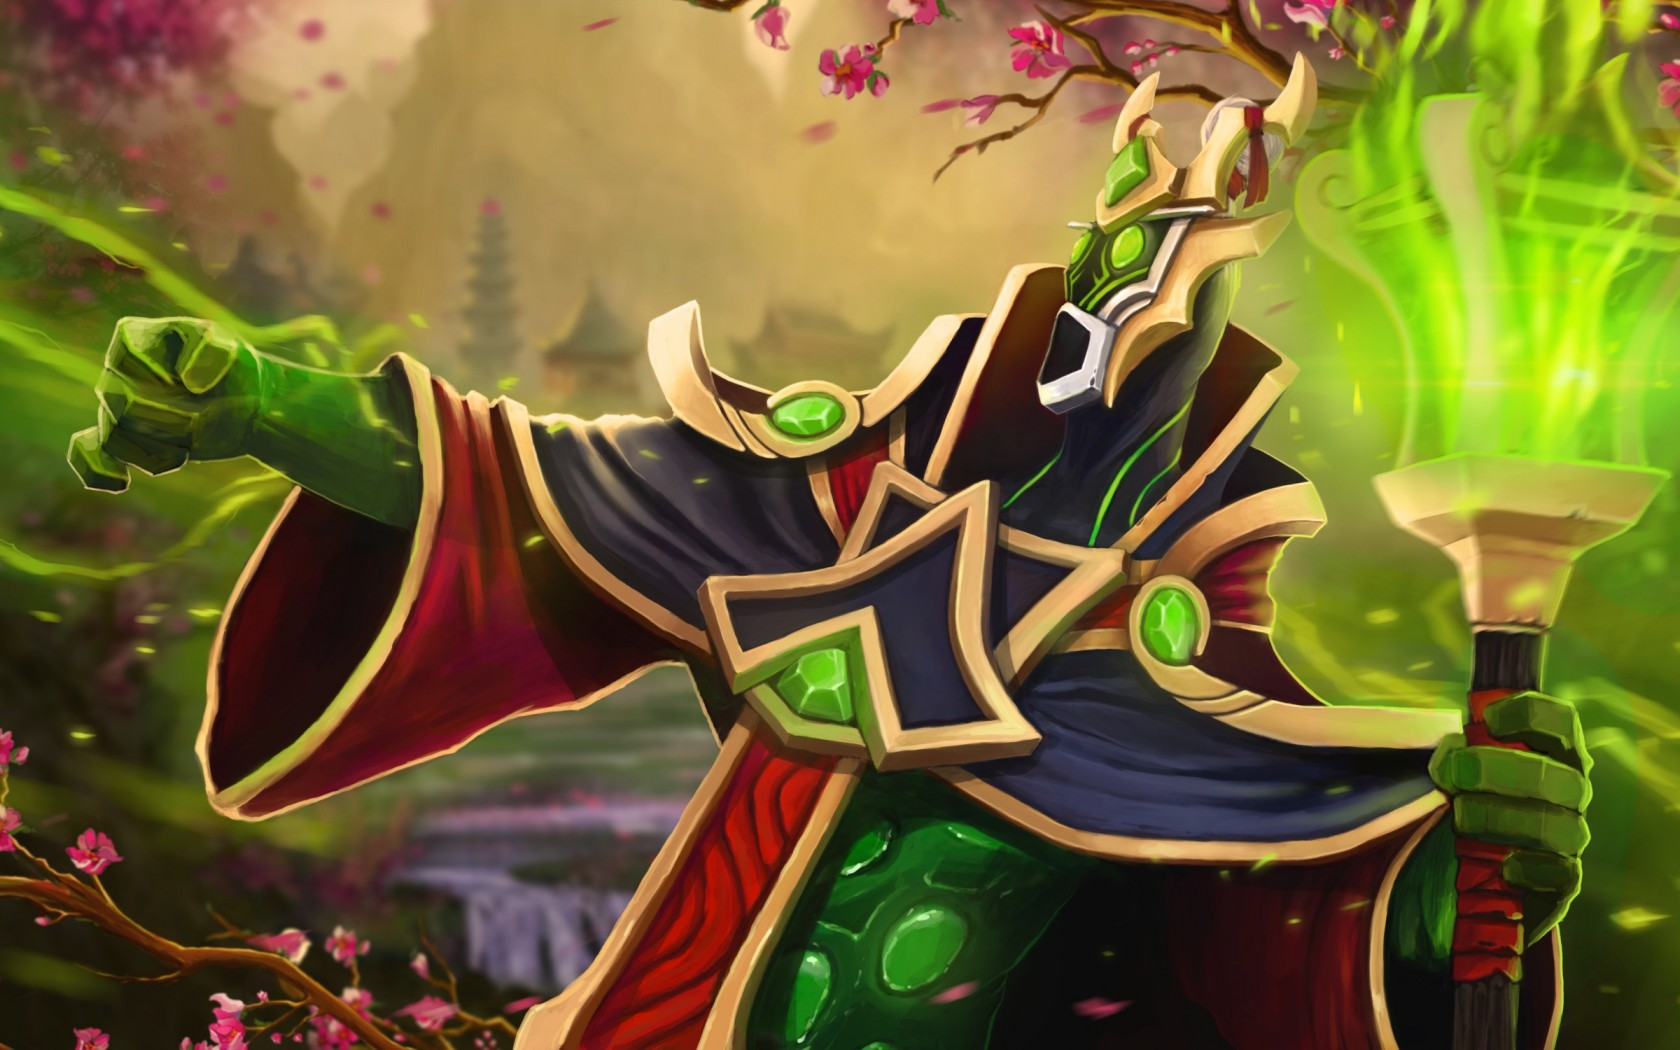 Rubick New Set Desktop Wallpapers Dota 2 Wallpapers Dota 2 Private Collection Background Image